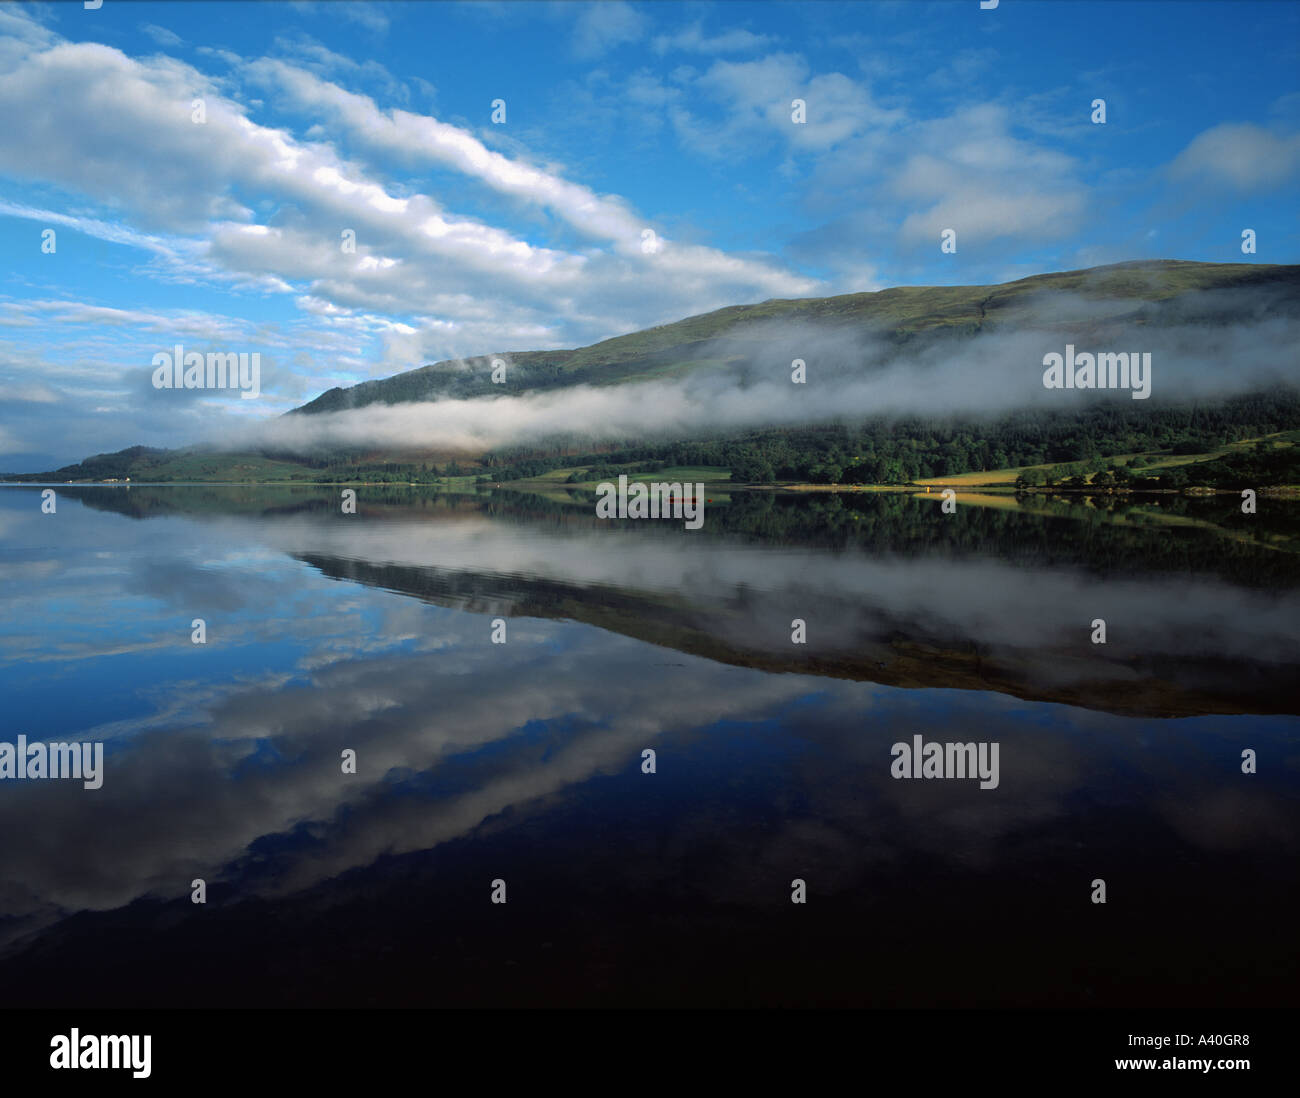 Early morning mist lies along the hill slopes on the north shore of Loch Leven seen from Invercoe Glencoe Scottish Highlands - Stock Image